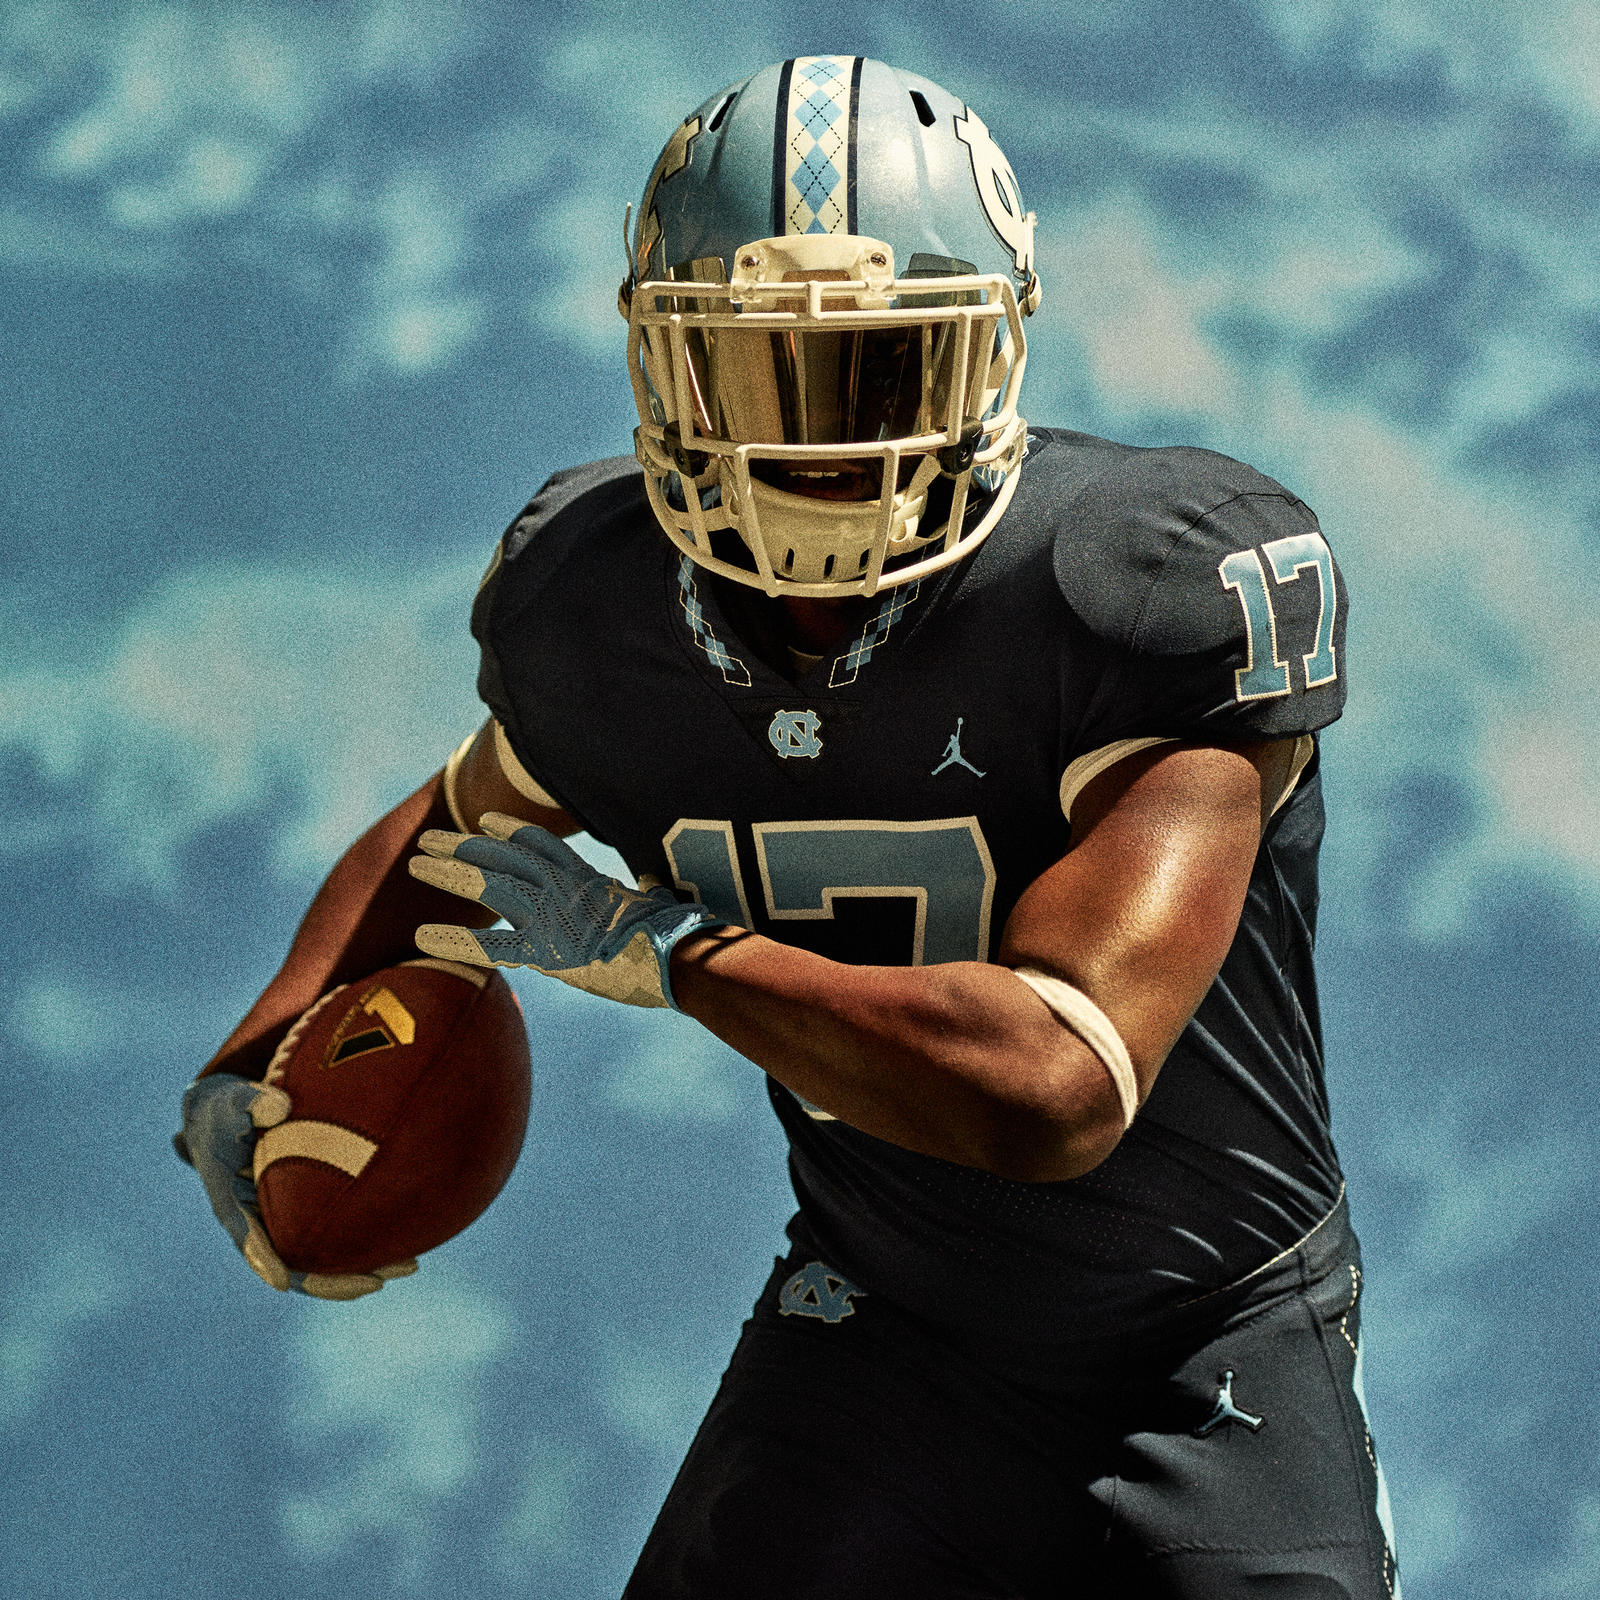 Jordan Brand Reveals the University of North Carolina Football Uniforms  3